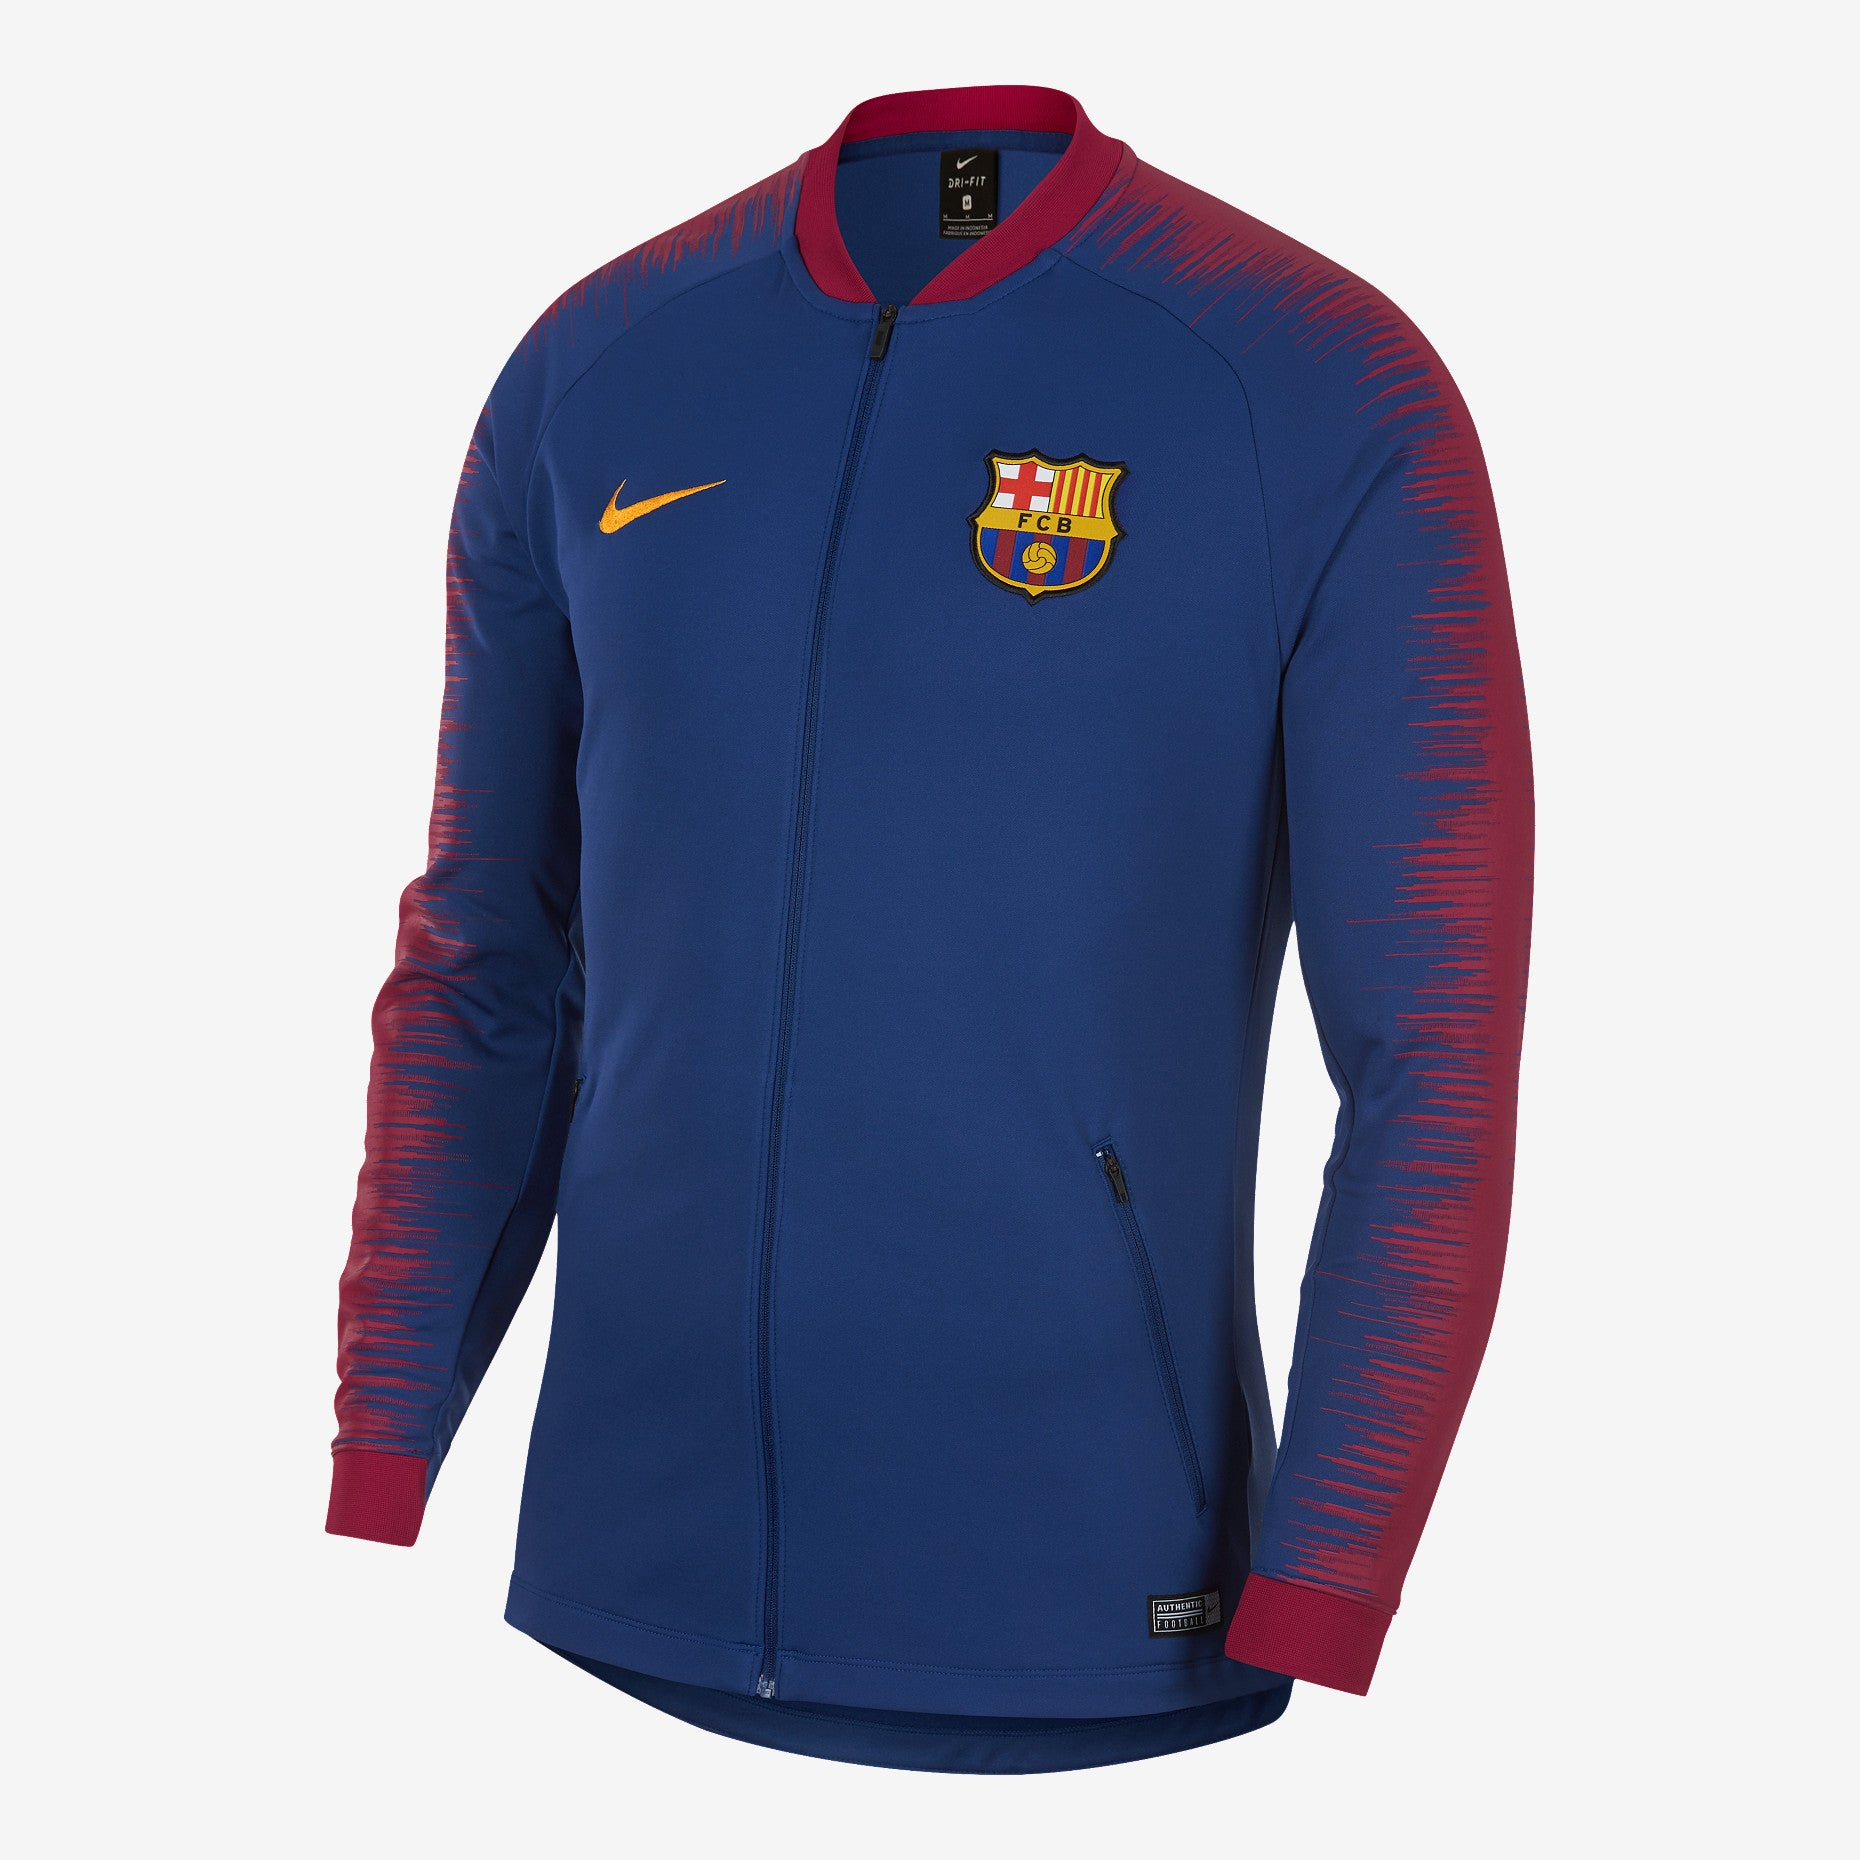 Nike - Men s Nike FC Barcelona Football Jacket - La Liga Soccer 42f671b2b925